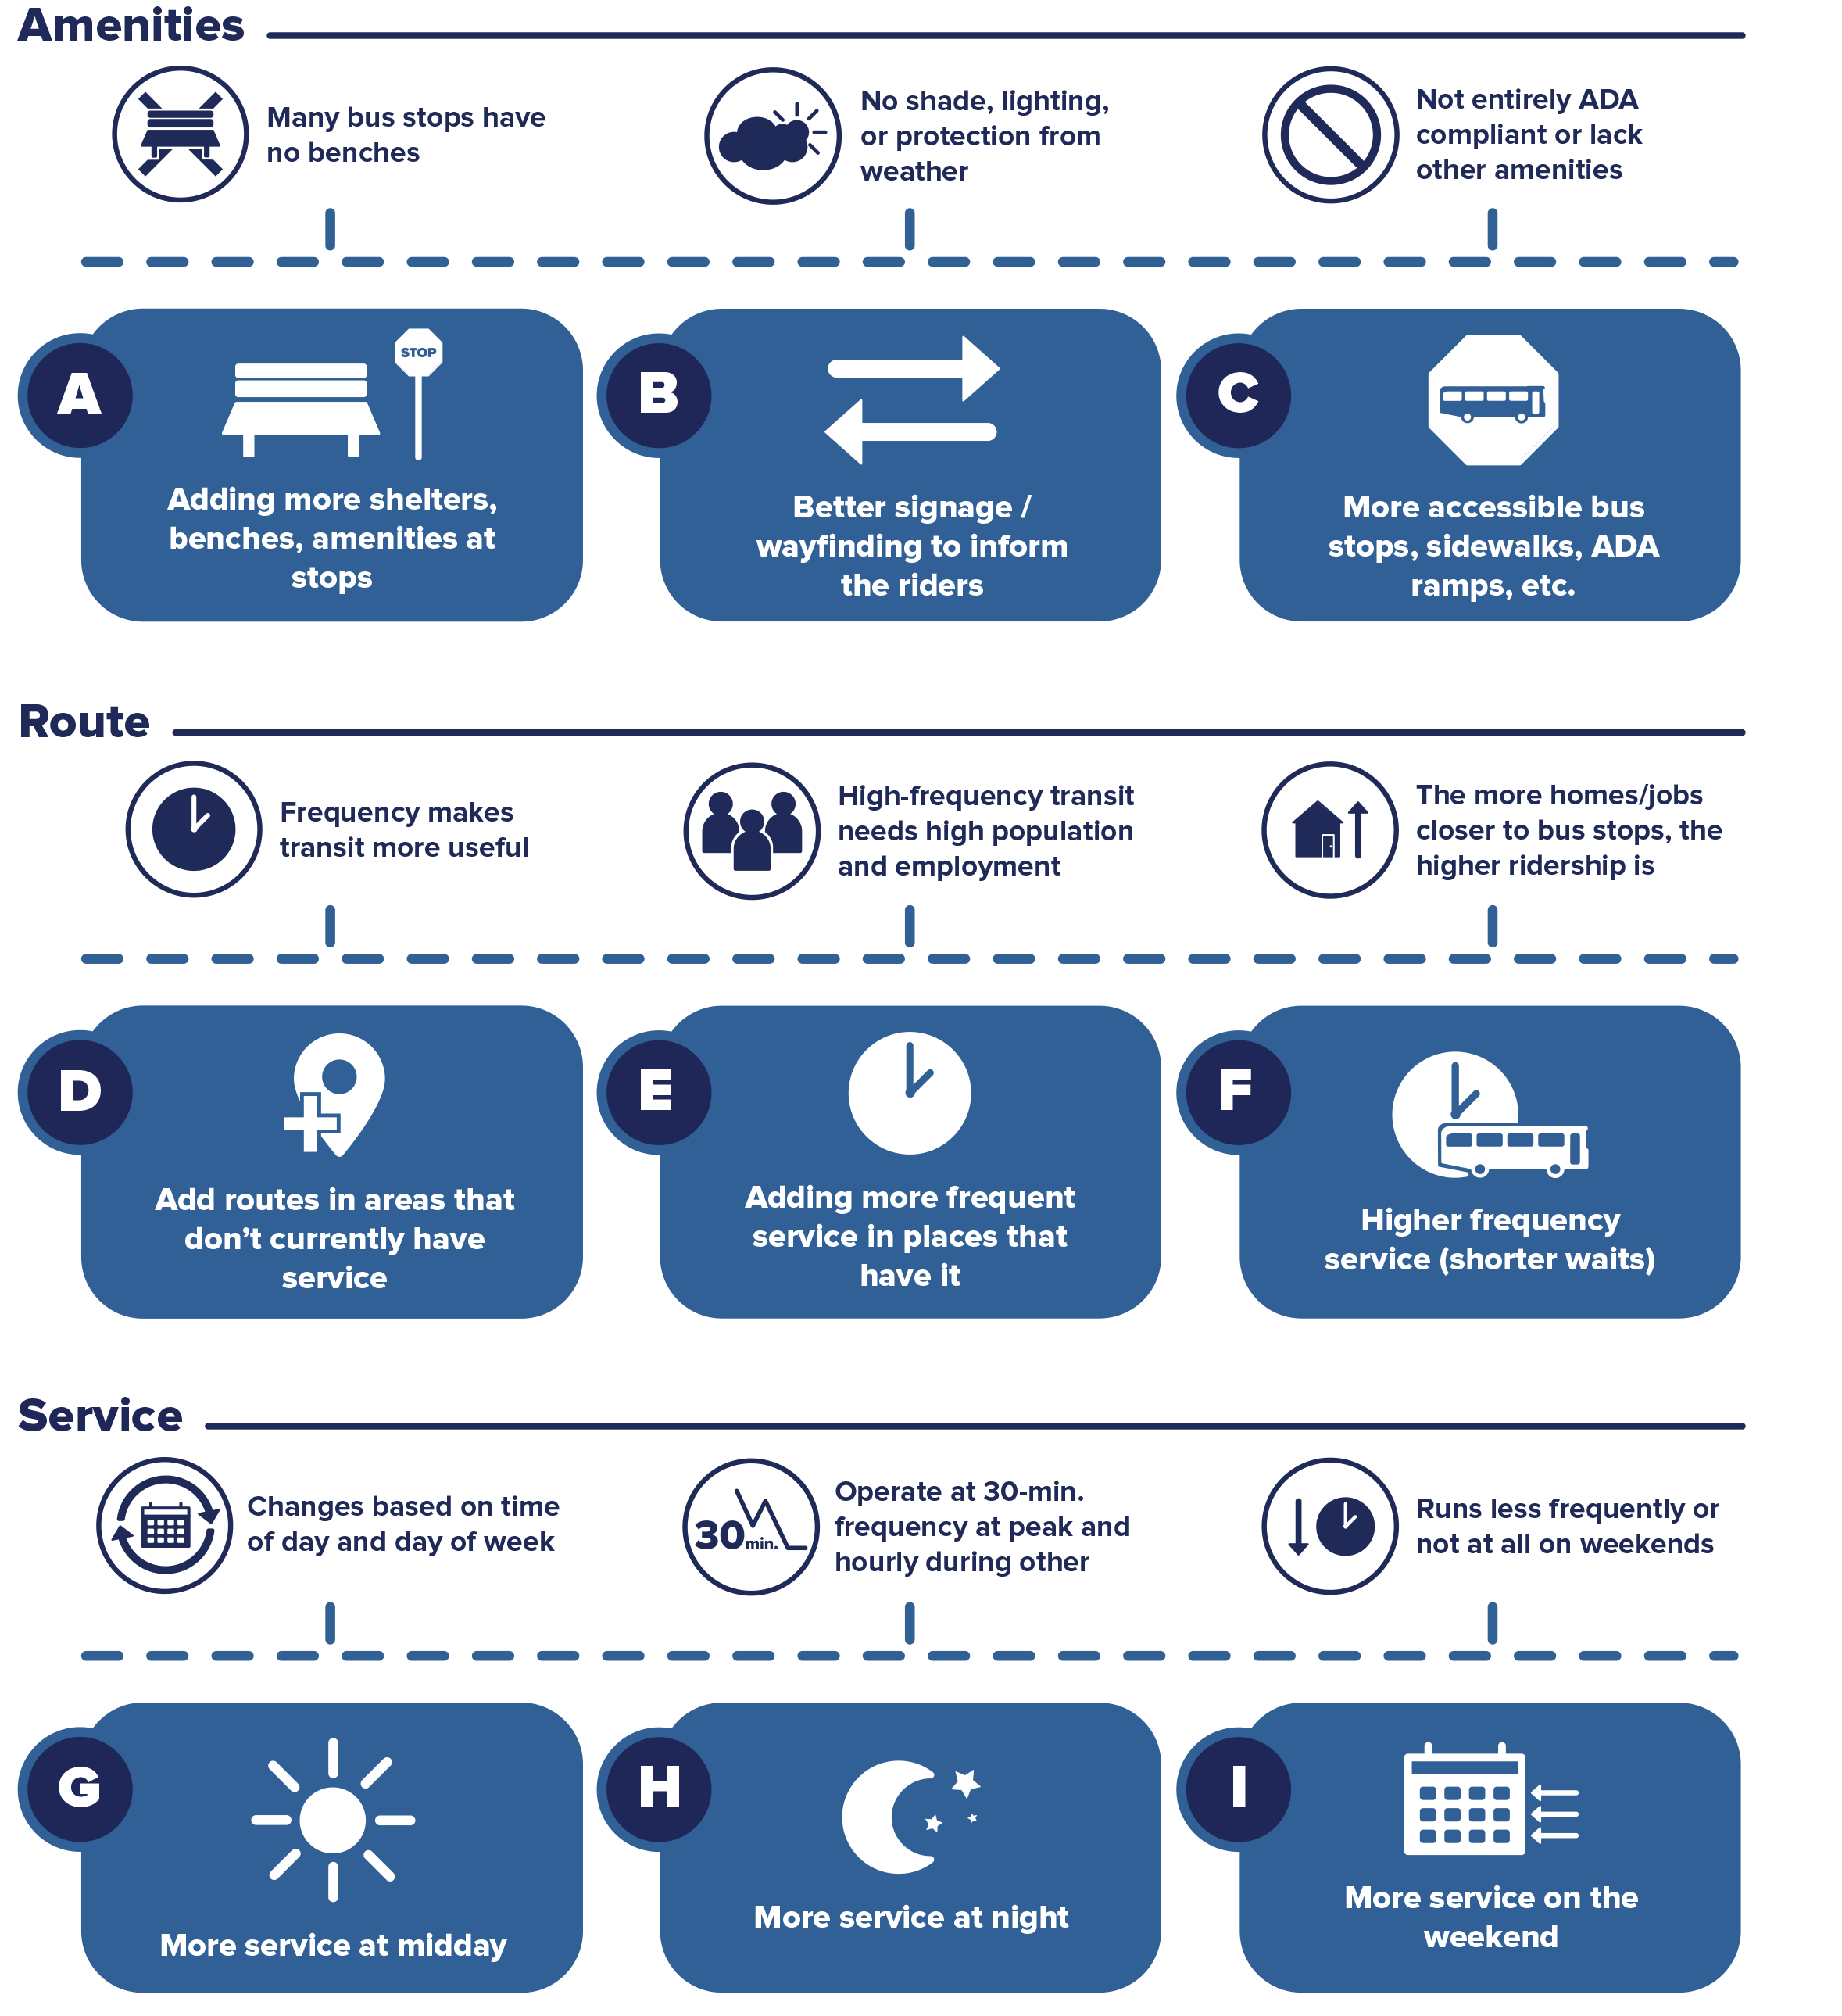 A Better Connection System Priorities Infographic. Trinity Metro Blog.